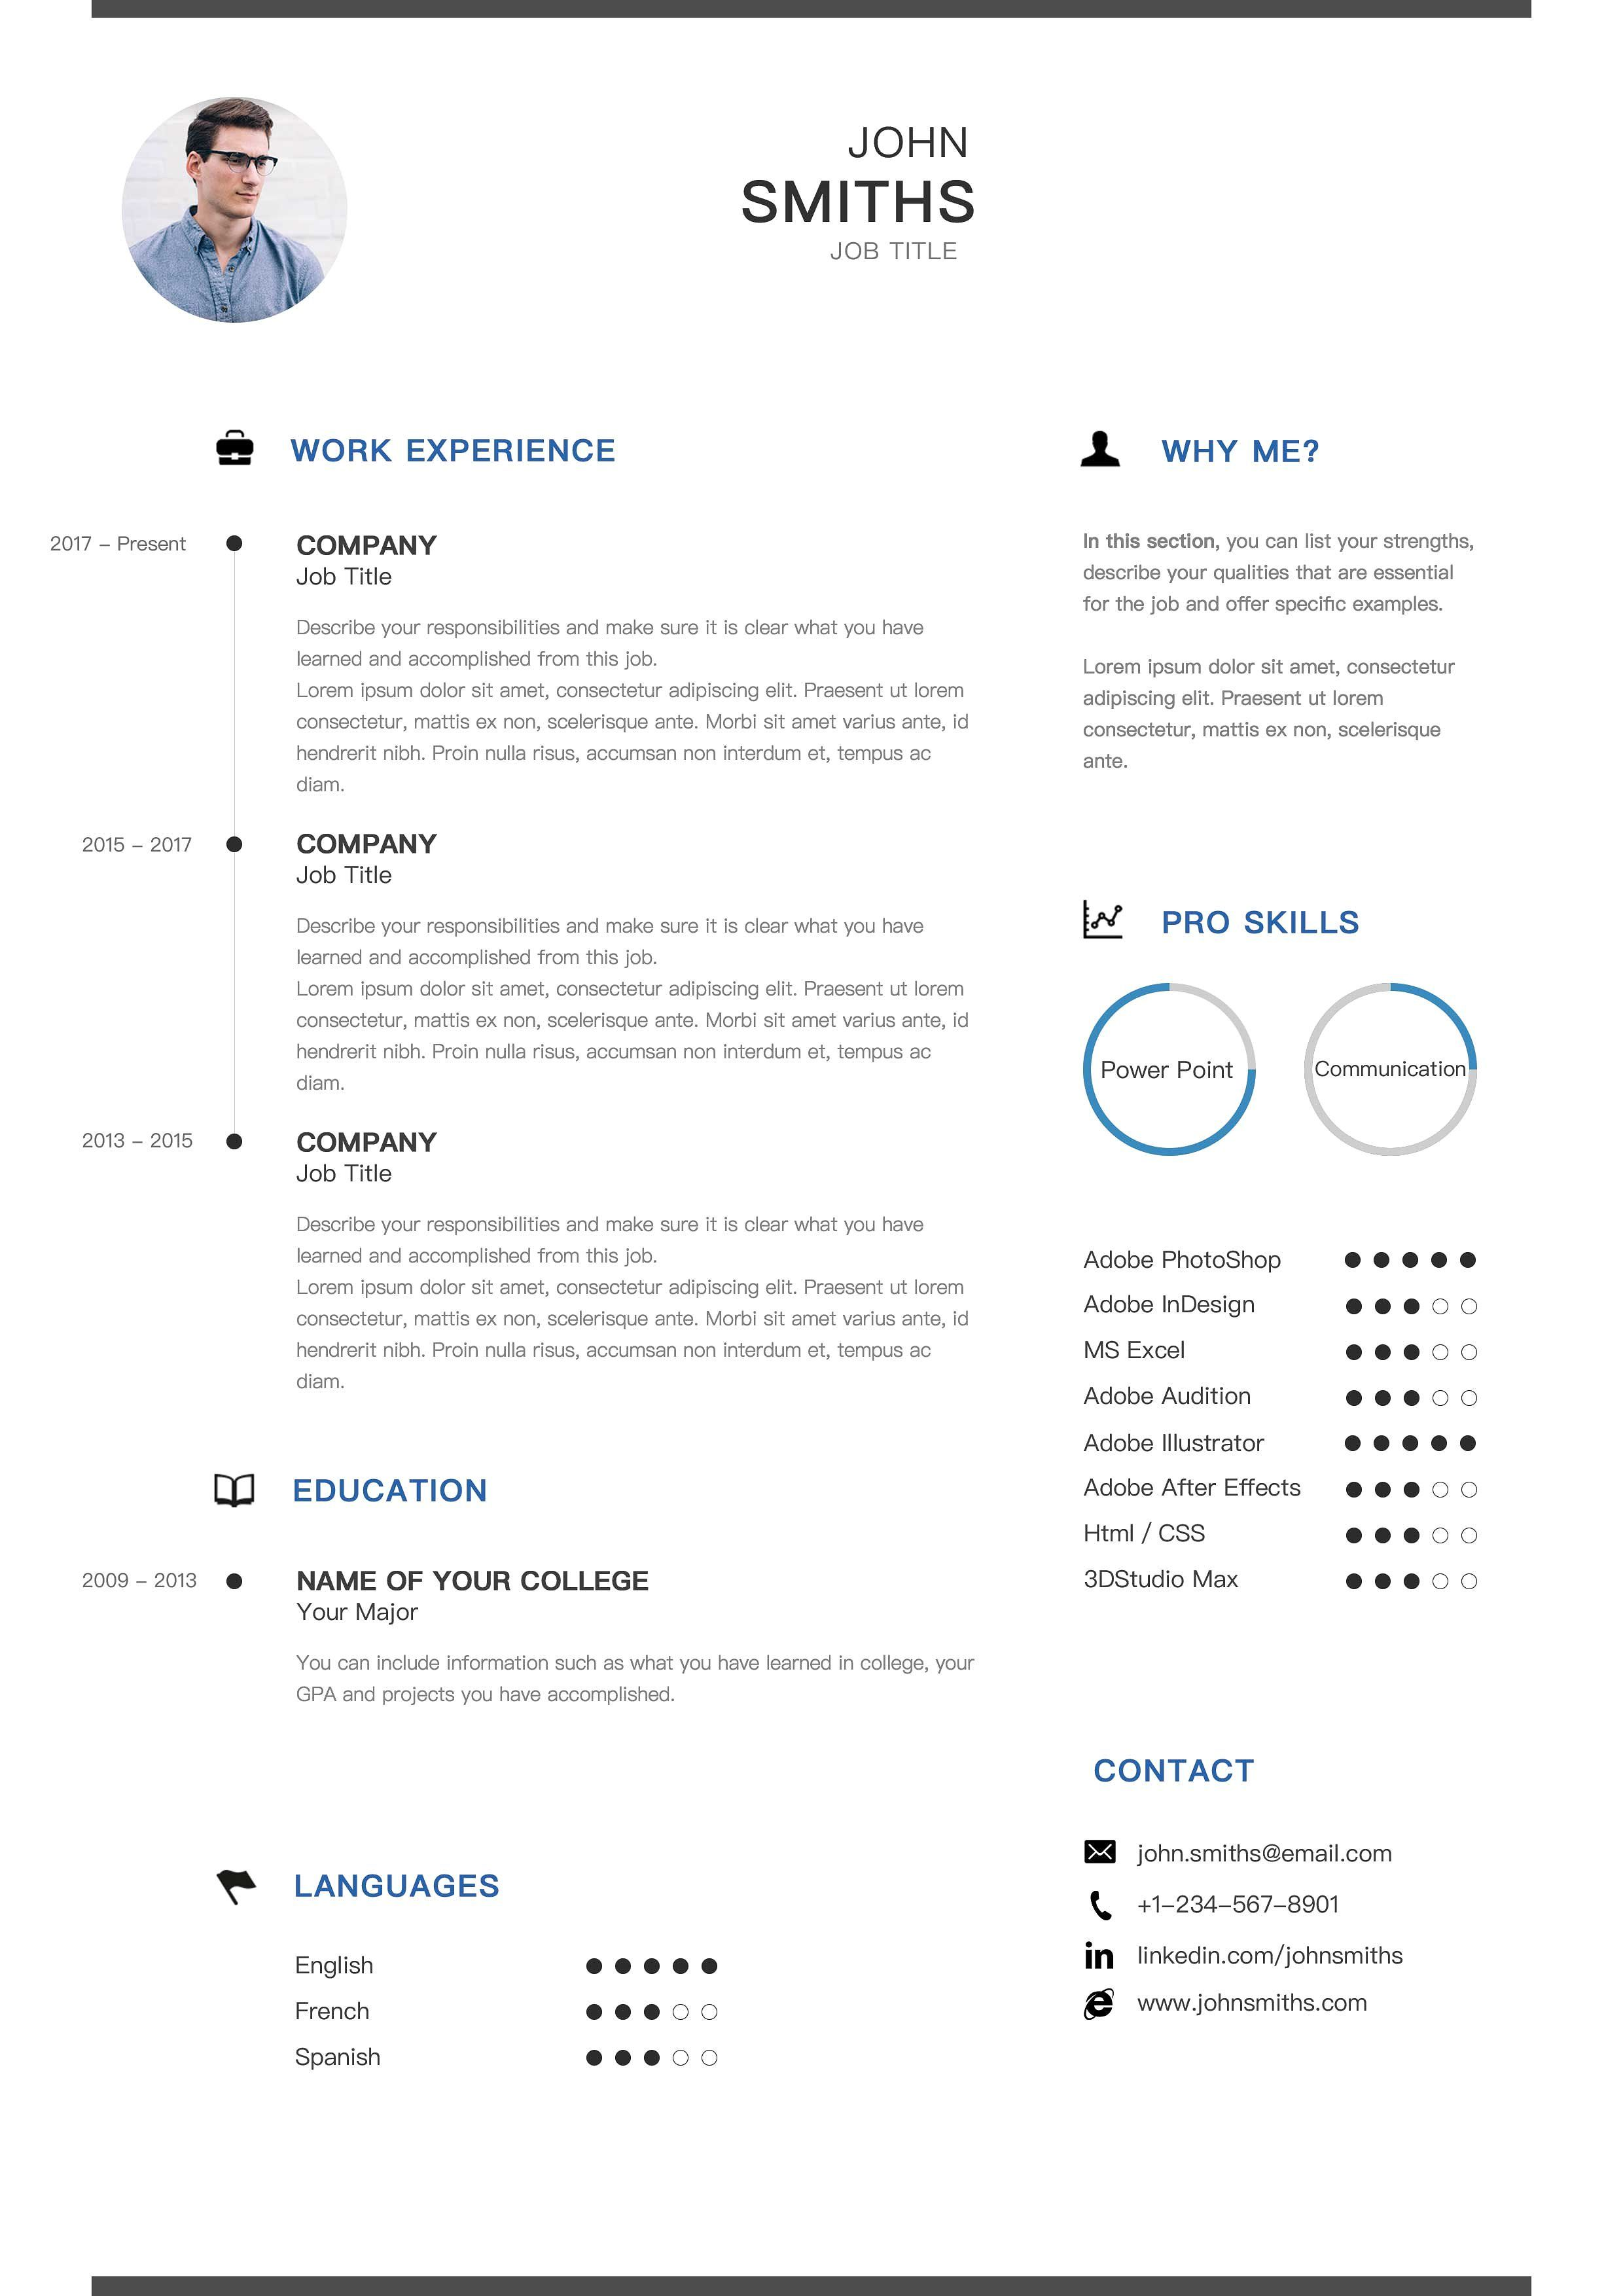 Basic Clean Resume Cv Grouped Good Separated Edit